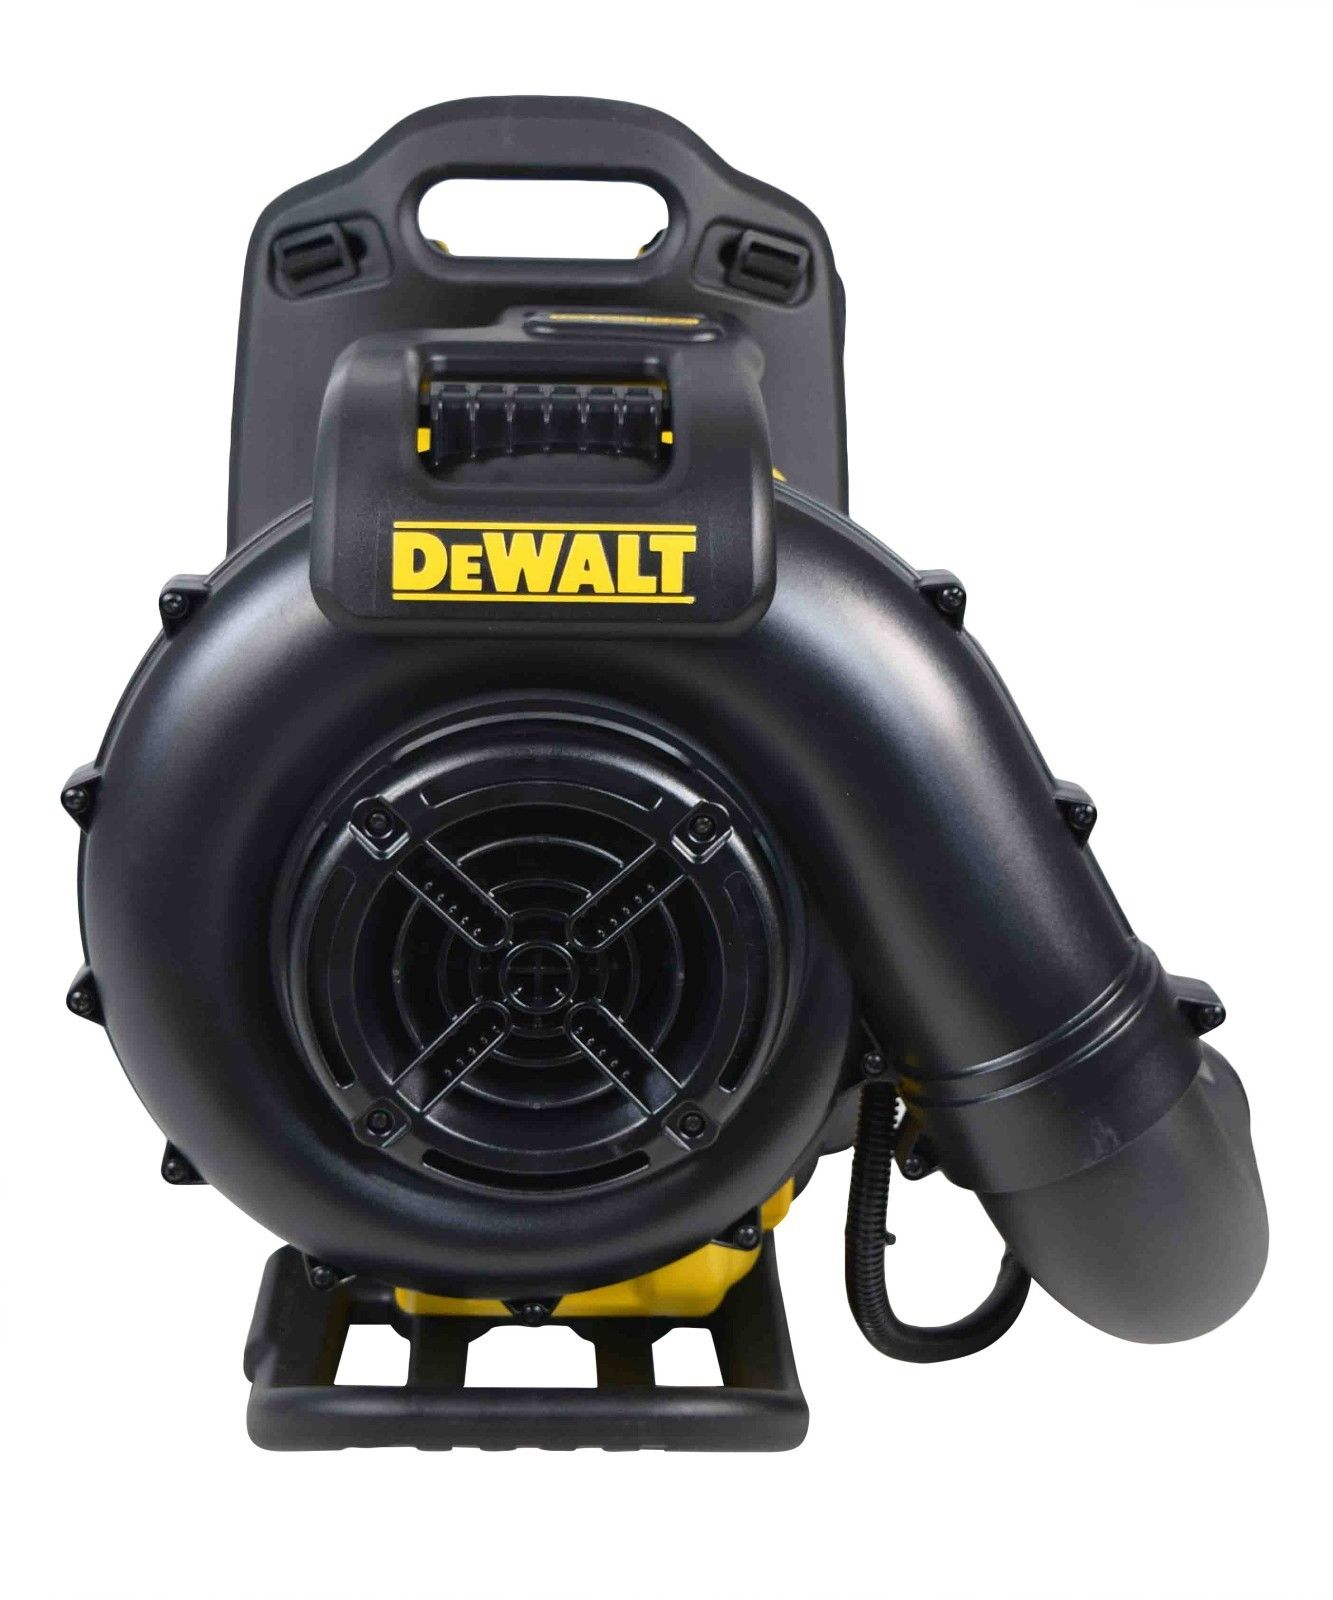 Dewalt-Dcbl590x1-40v-Max-7.5-Ah-Lithium-Ion-Xr-Brushless-Backpack-Blower-image-6